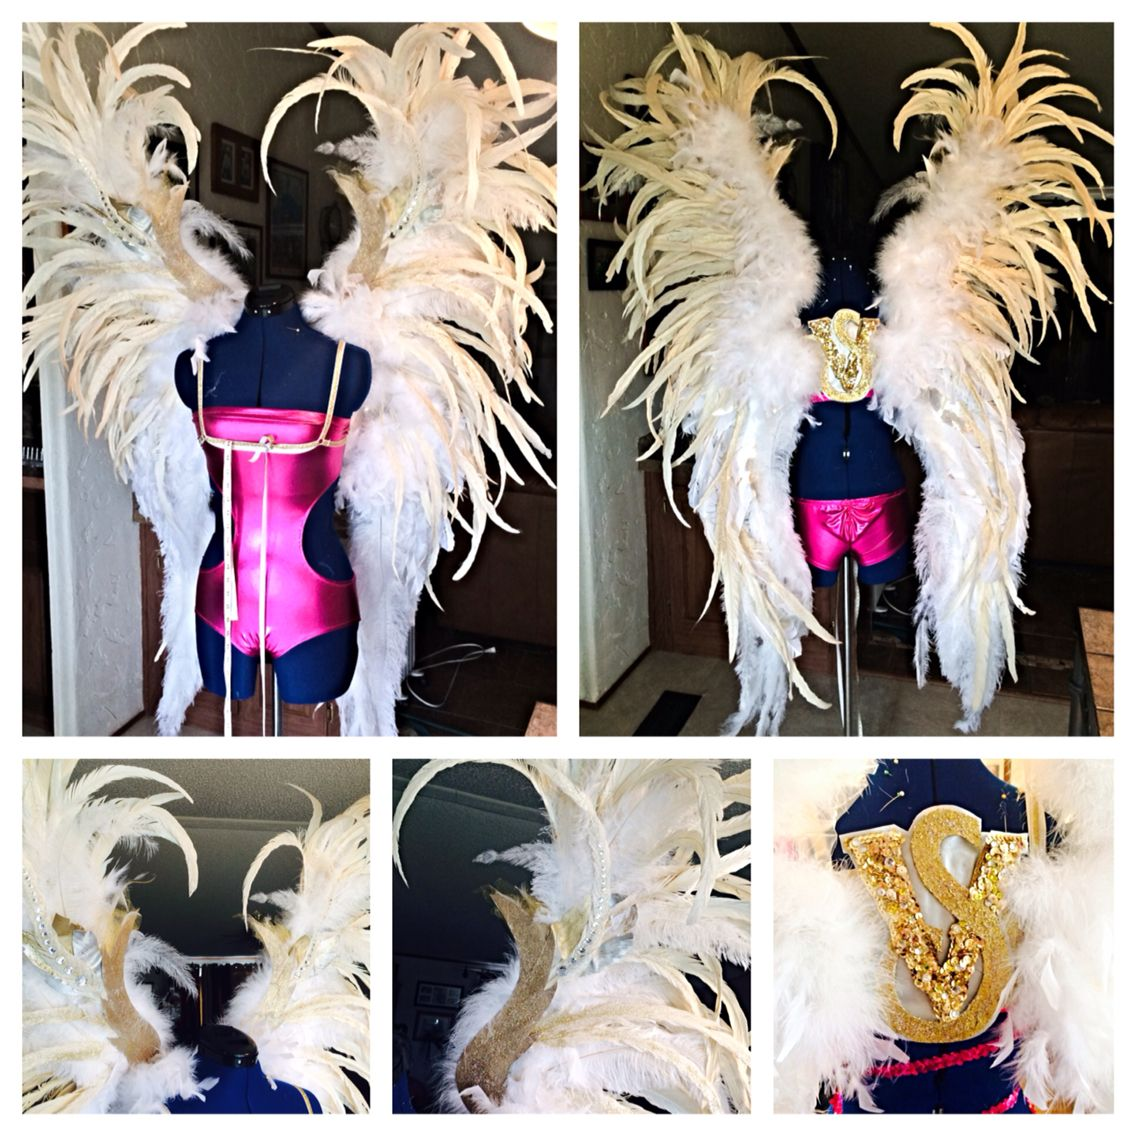 My Diy Version Of The Famous Victoria S Secret Angel Wings Designed And Created For A Photo Shoot Diy Angel Wings Victoria Secret Angel Wings Wings Costume